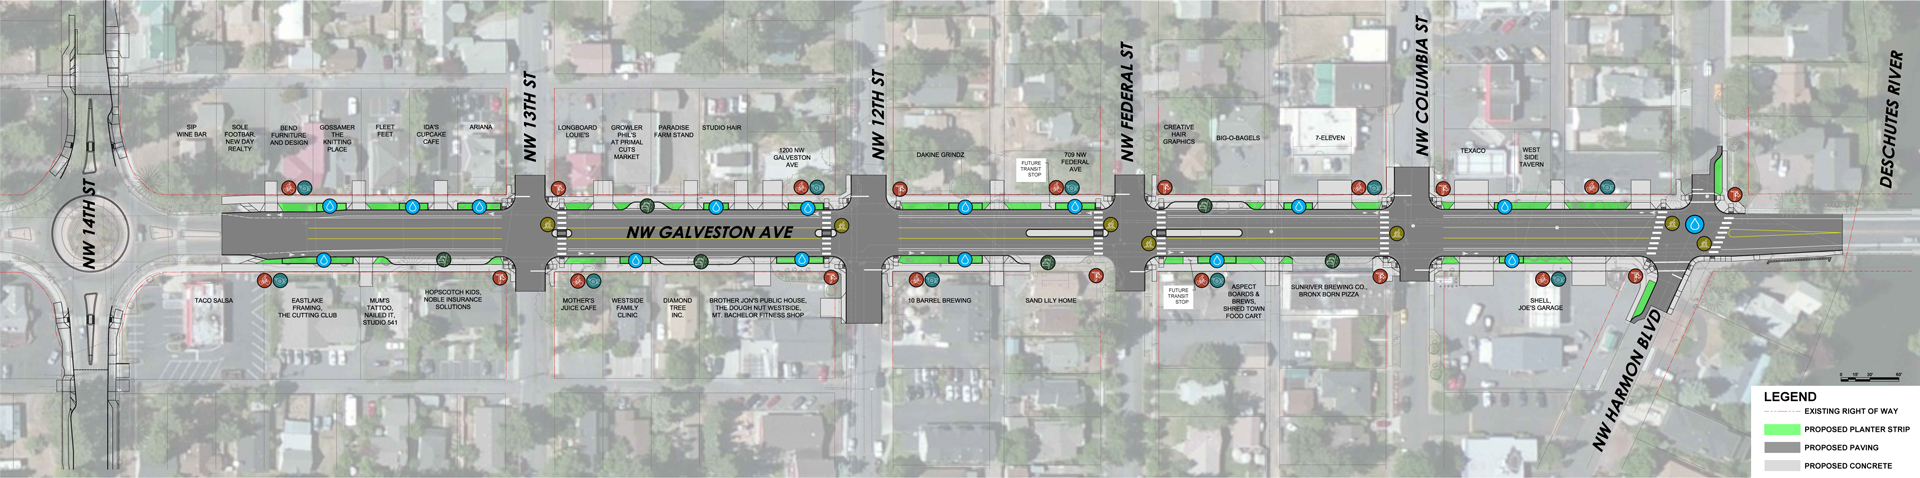 Draft plan concept for Galveston Ave between 14th Street and the Deschutes River bridge.